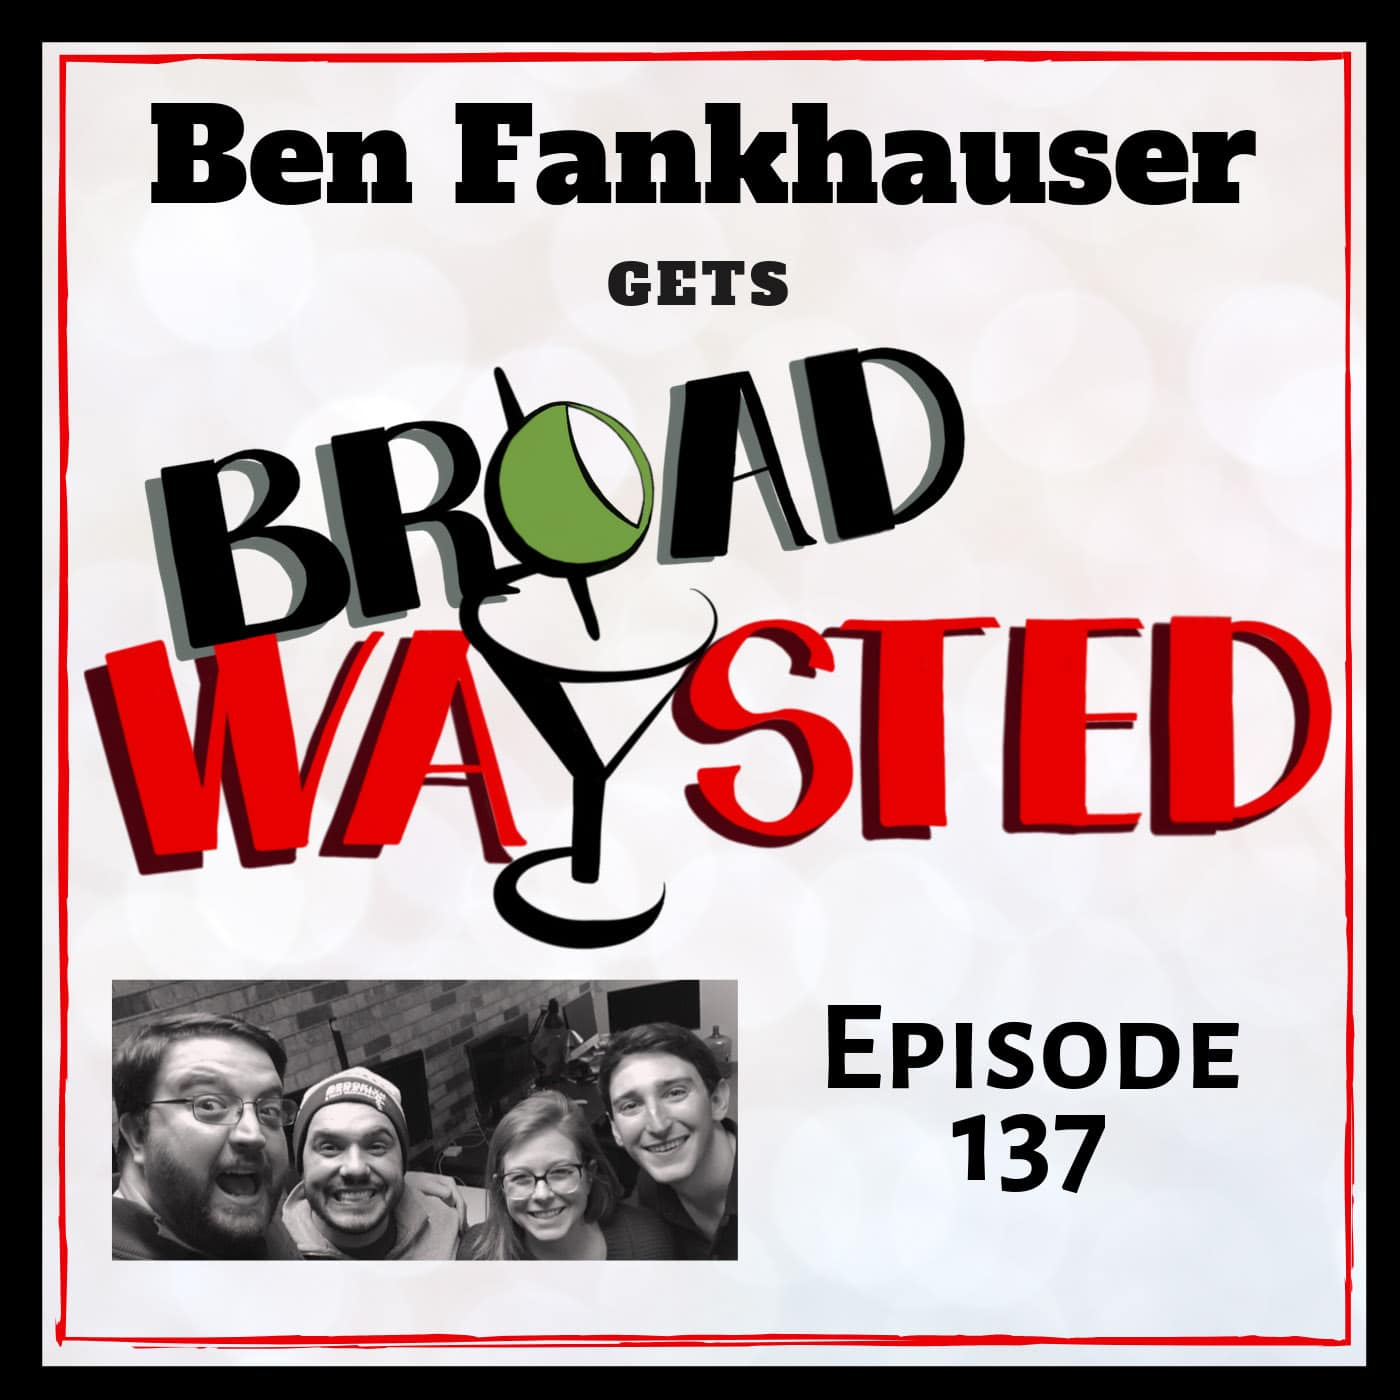 Broadwaysted Ep 137 Ben Fankhauser